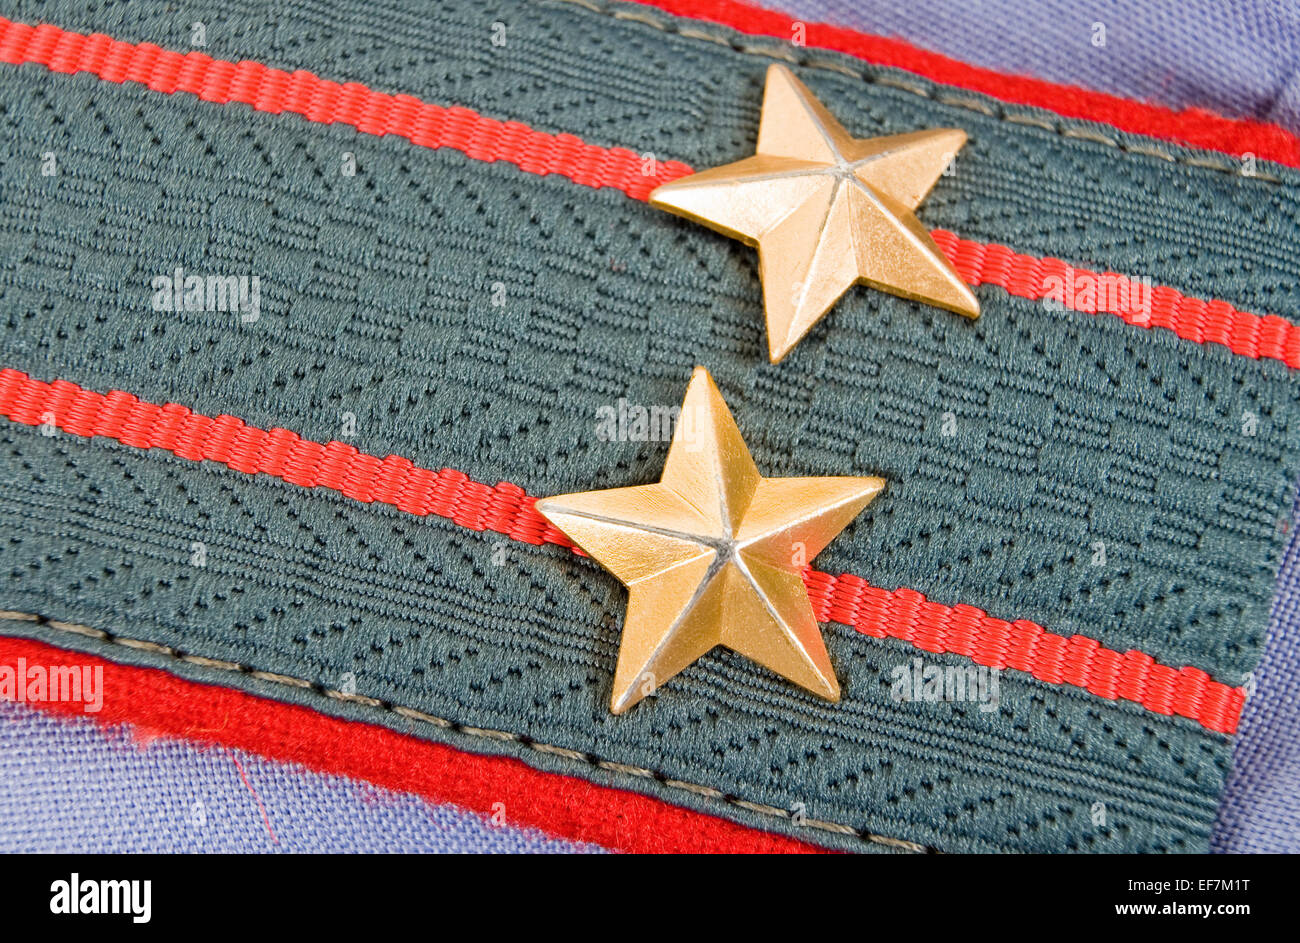 Shoulder strap of  lieutenant colonel of russian police - Stock Image